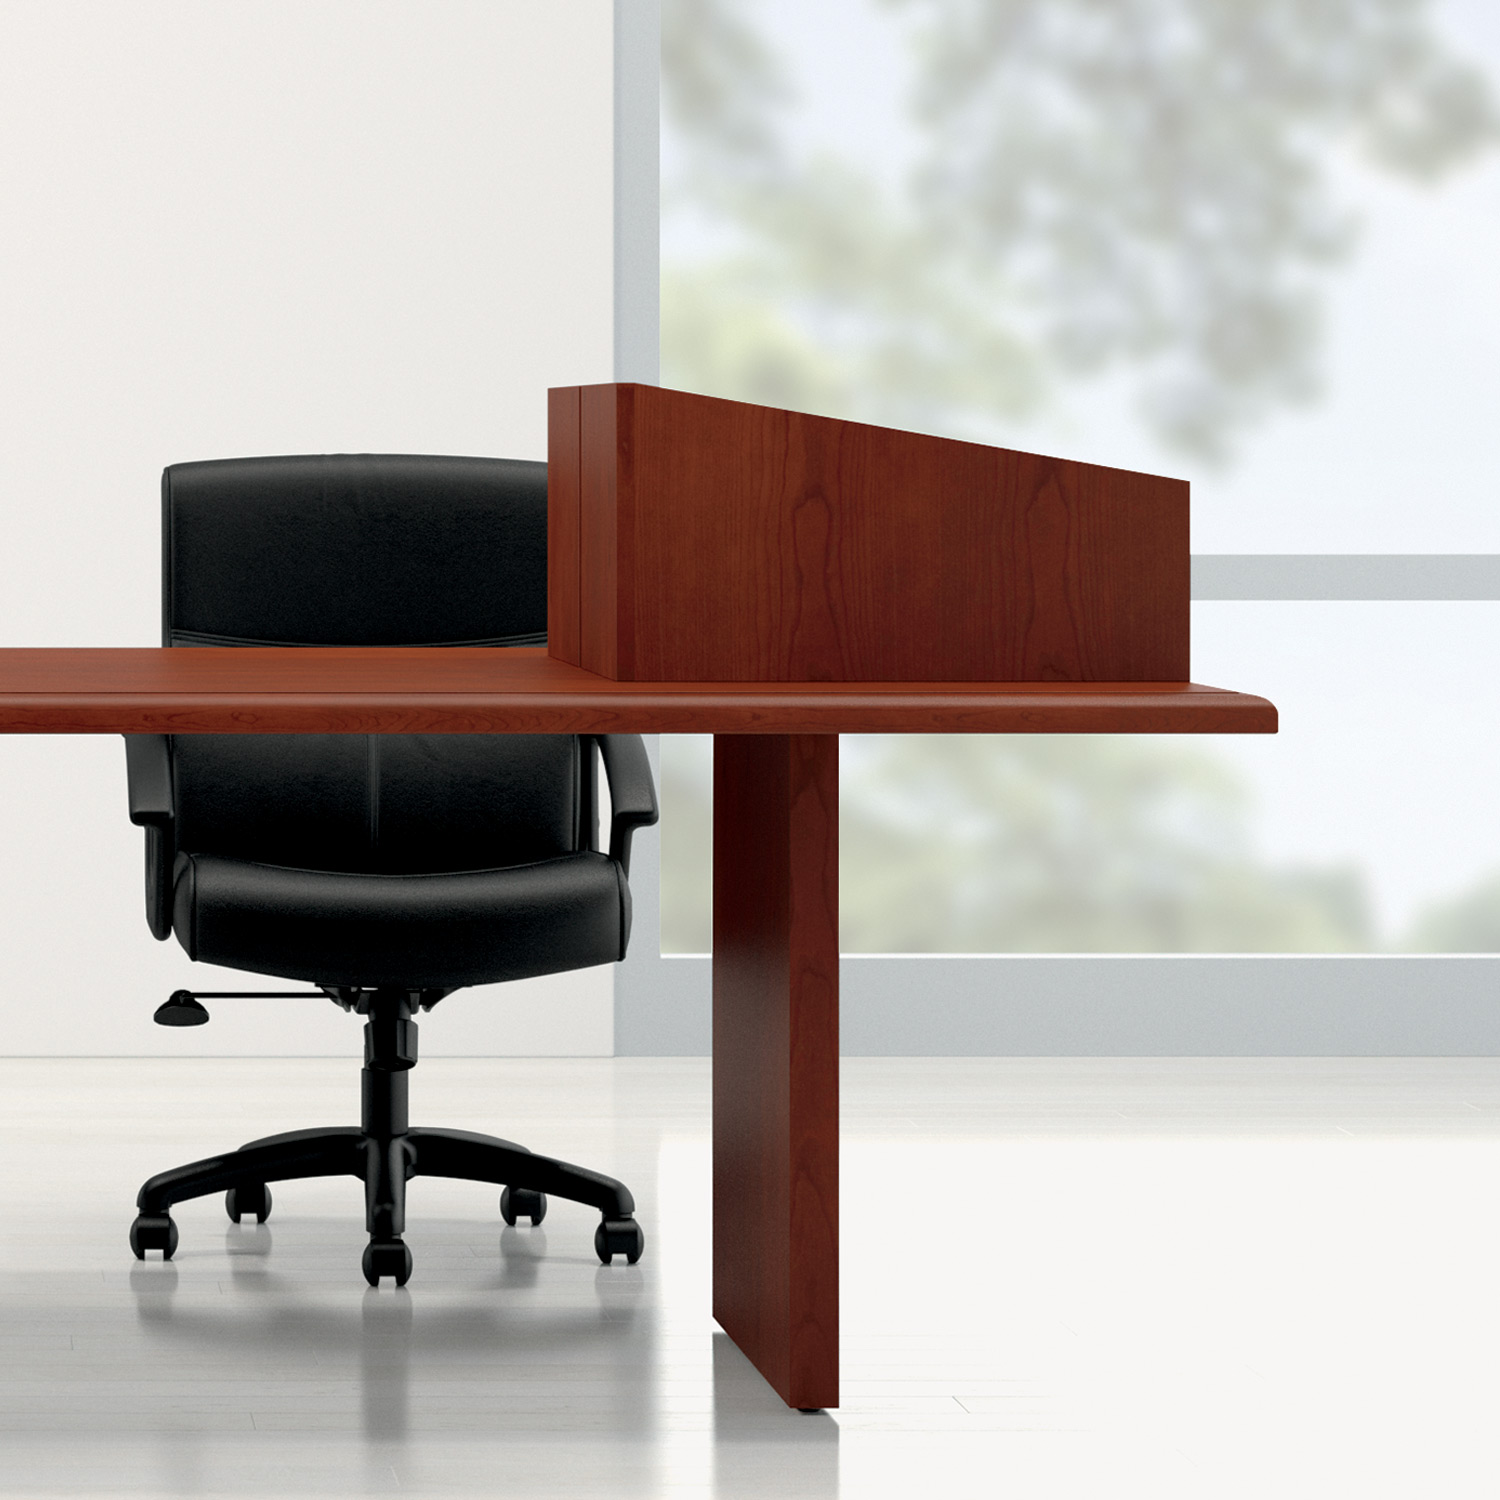 accessories accents products national office furniture